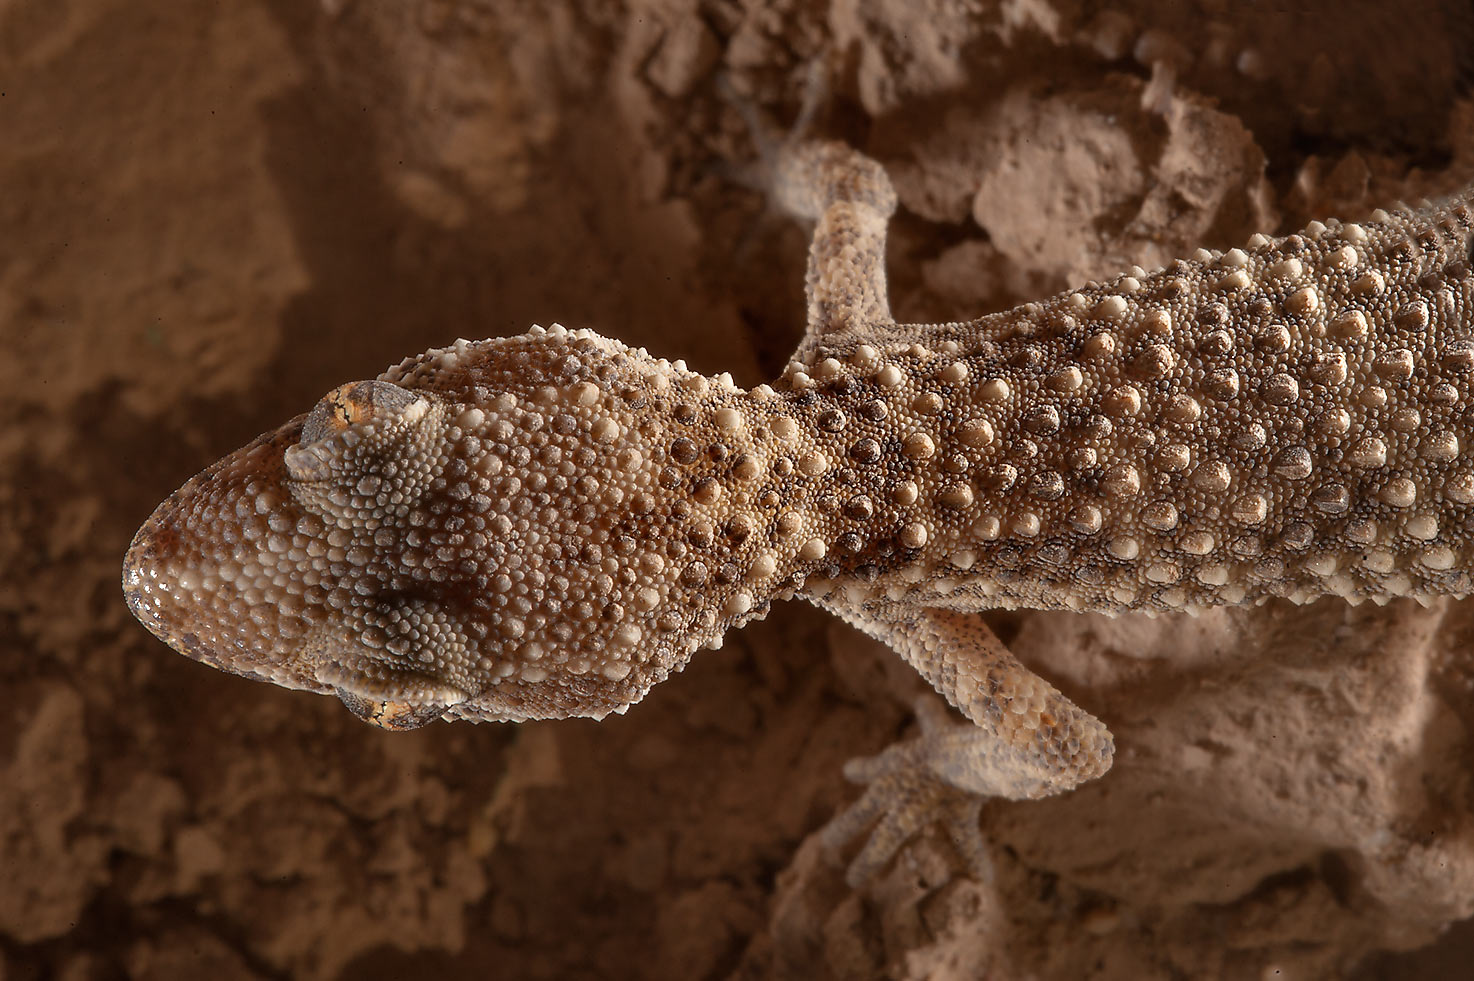 Button-scaled gecko (Bunopus tuberculatus) near Al Nuaman (Numan) in north-western Qatar